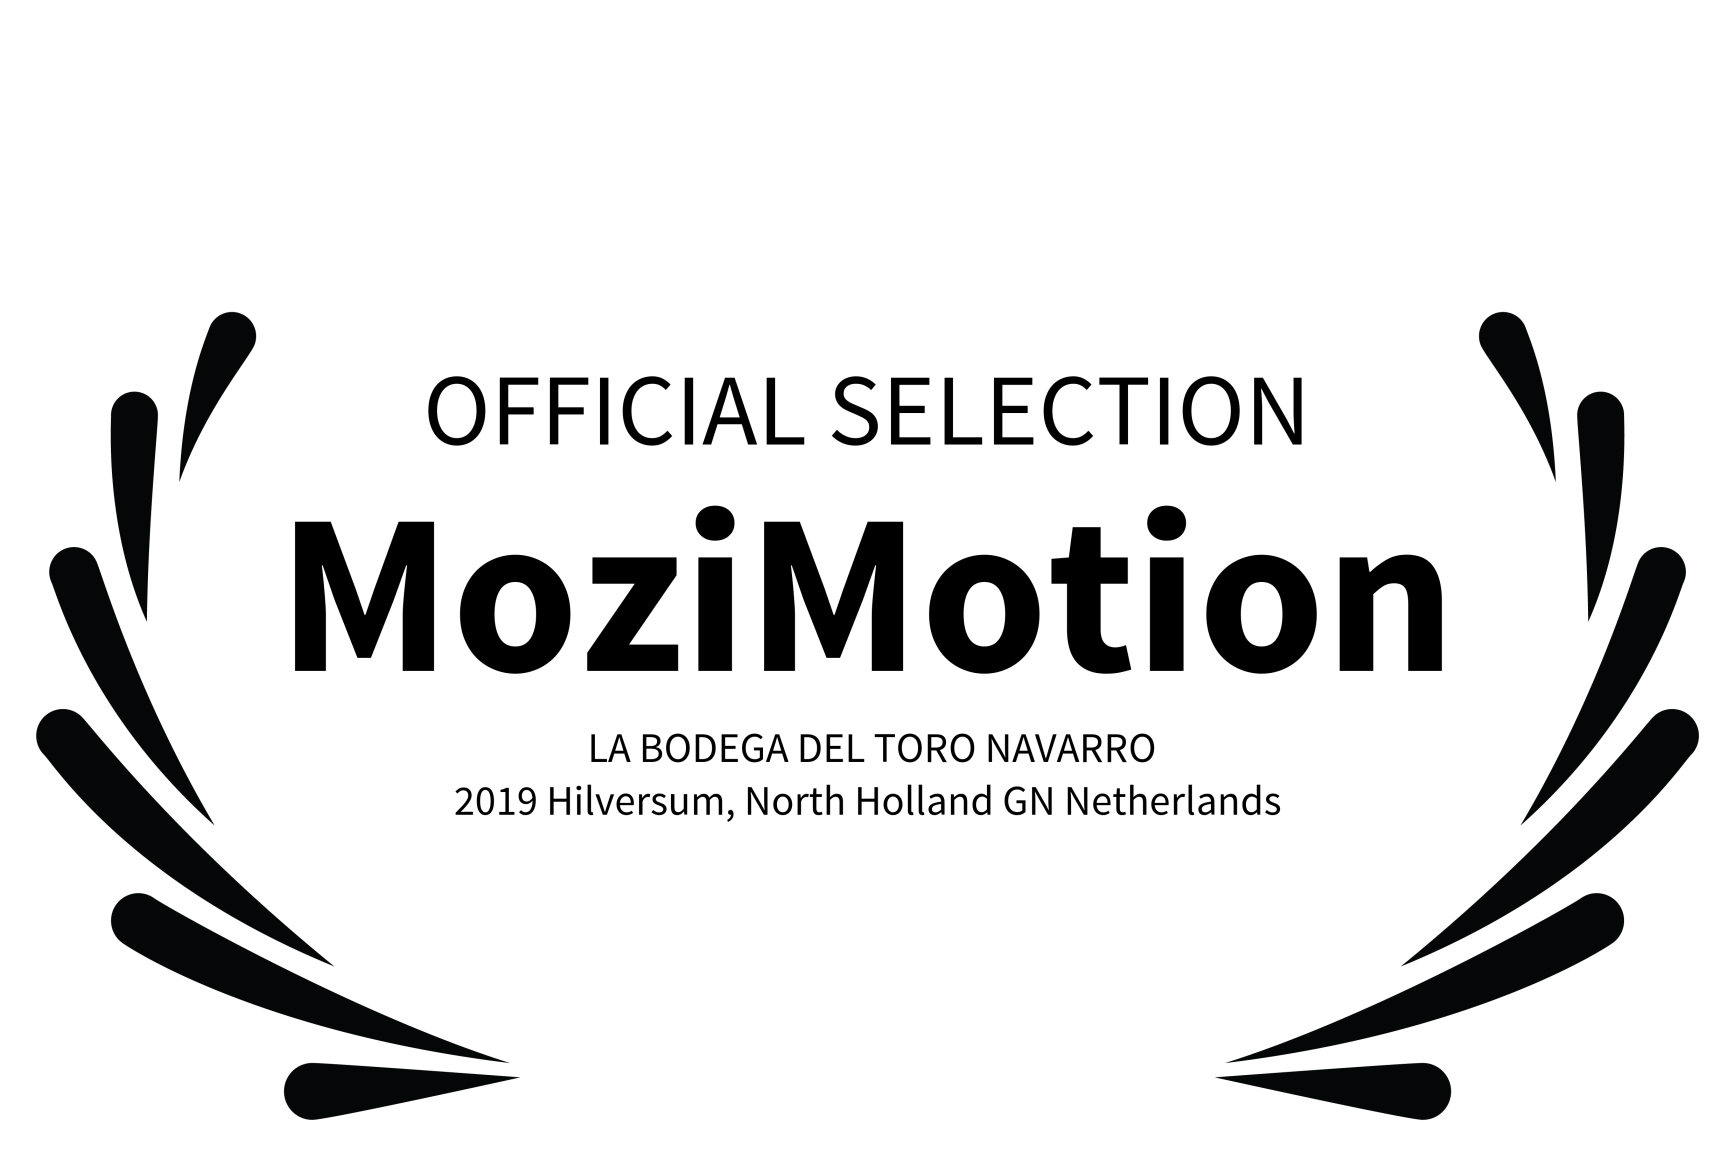 OFFICIAL SELECTION - MoziMotion -  LA BO